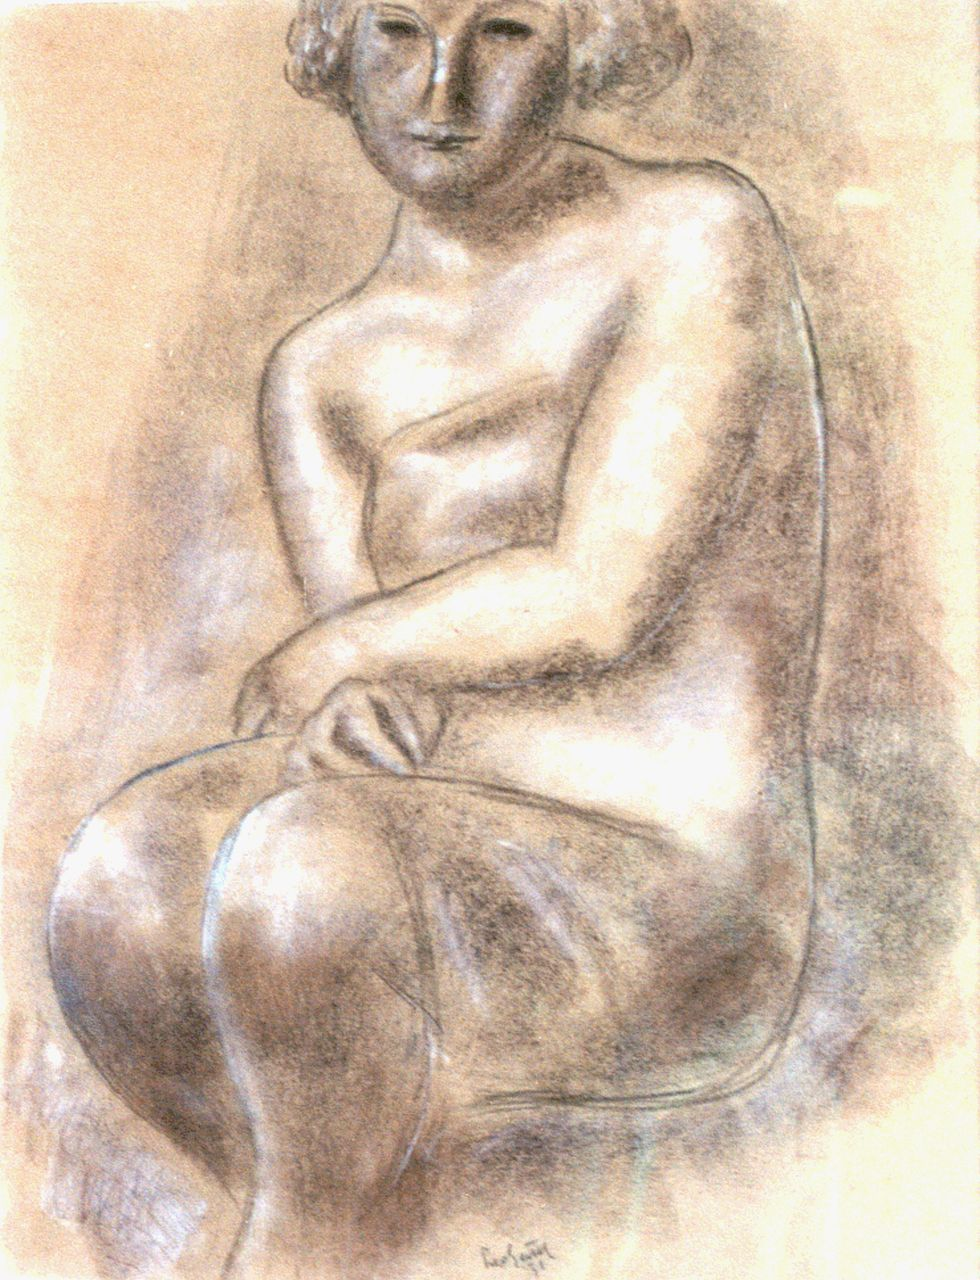 Gestel L.  | Leendert 'Leo' Gestel, A seated nude, chalk on paper 62.0 x 48.0 cm, signed l.c. and dated '31